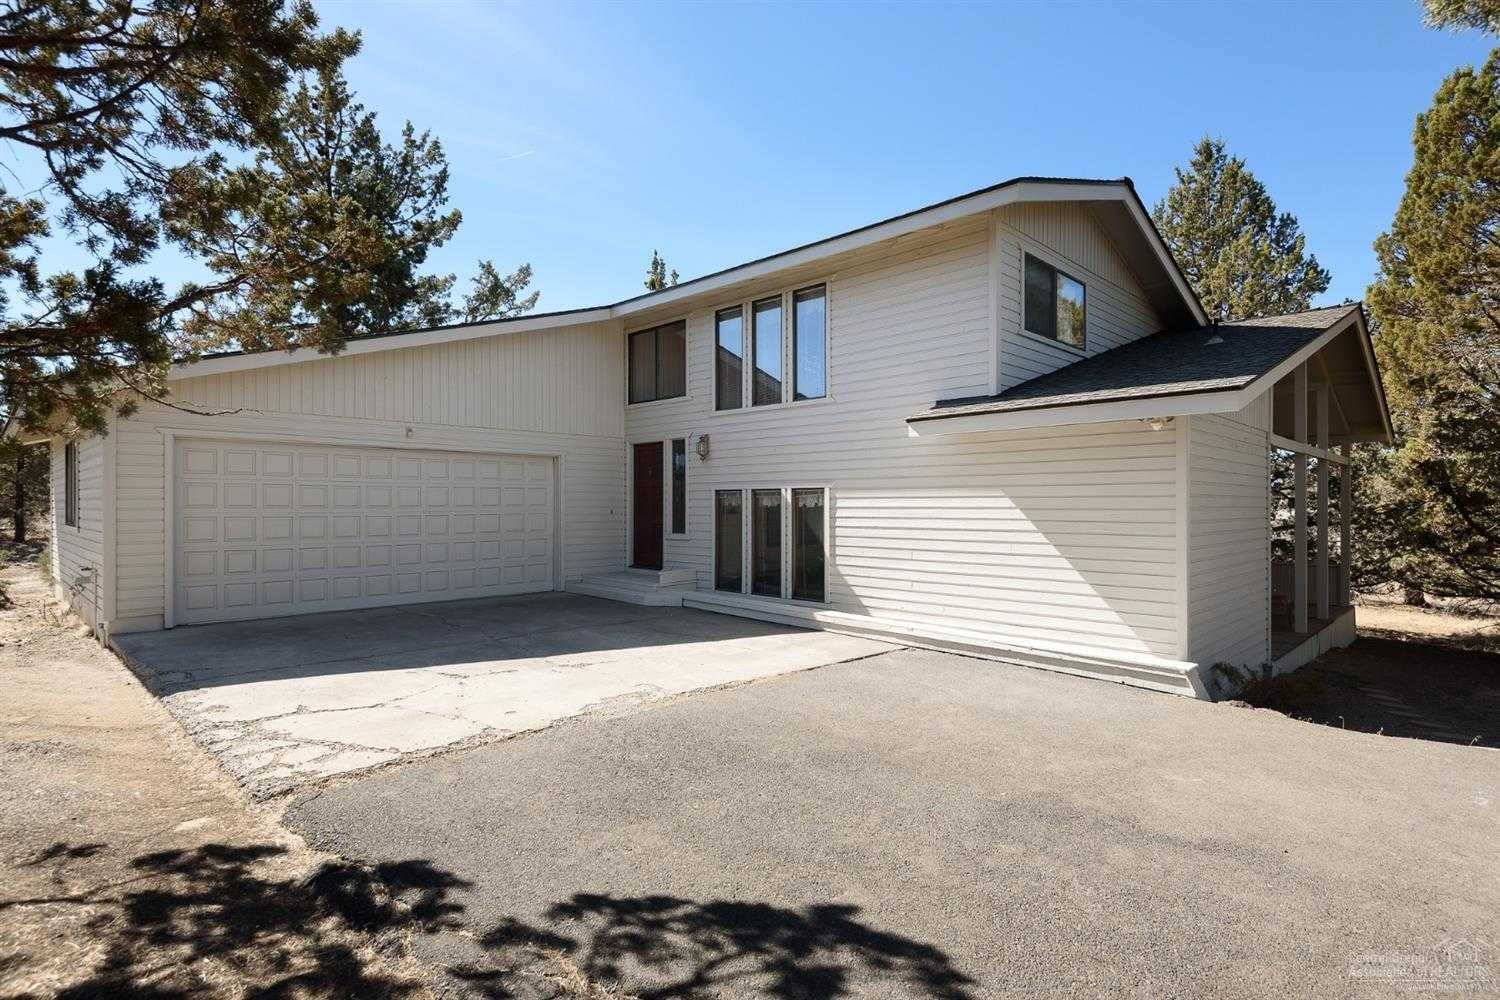 $525,000 - 4Br/3Ba -  for Sale in Bend